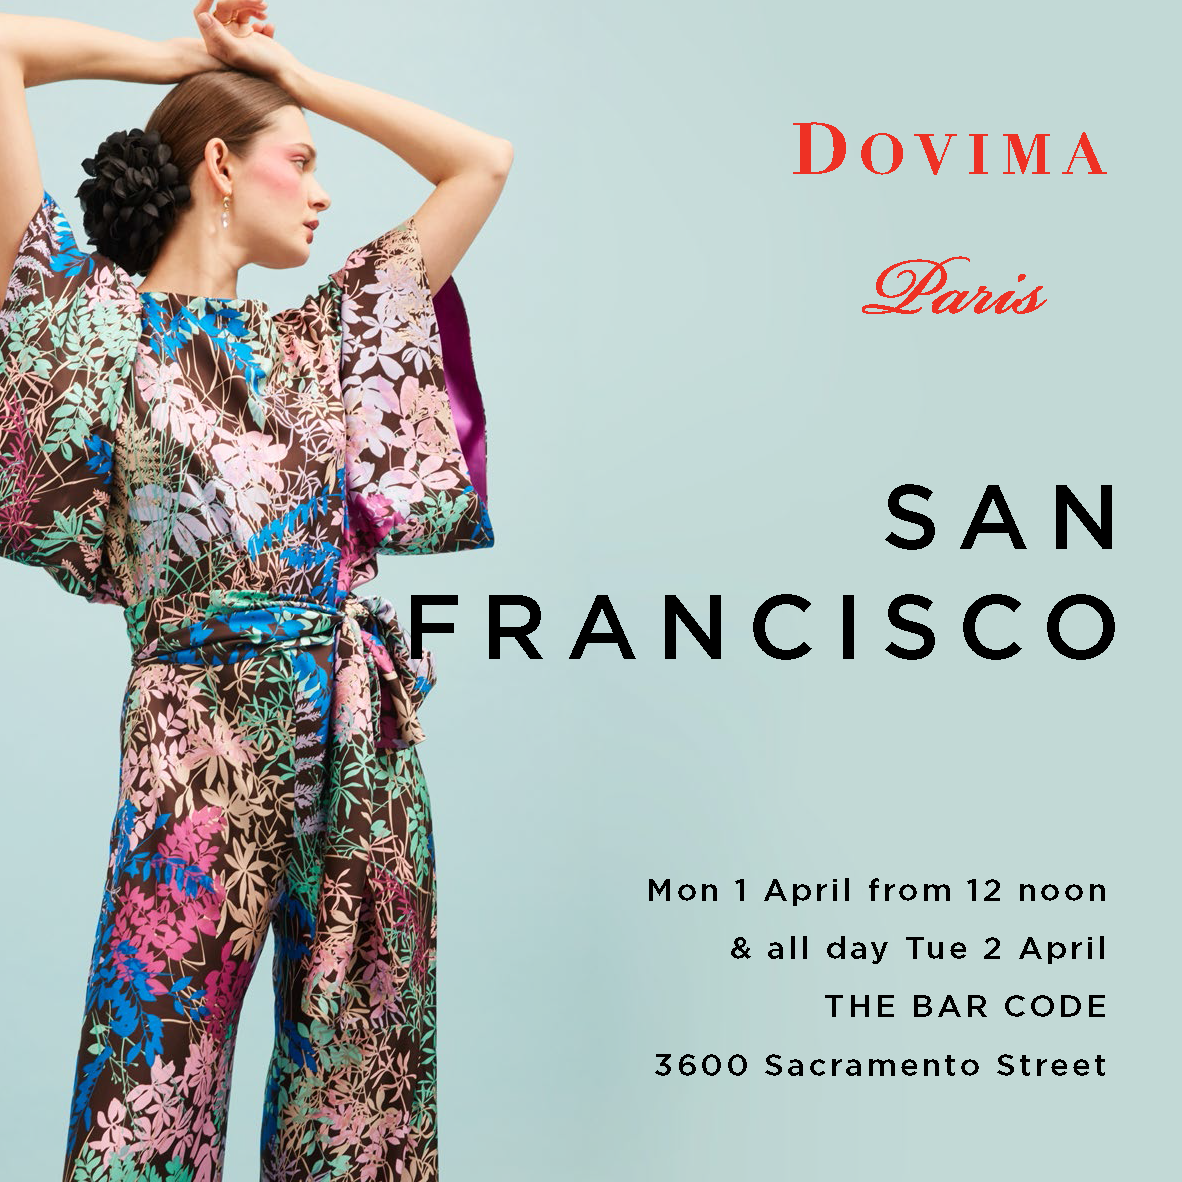 dovima_popup_april